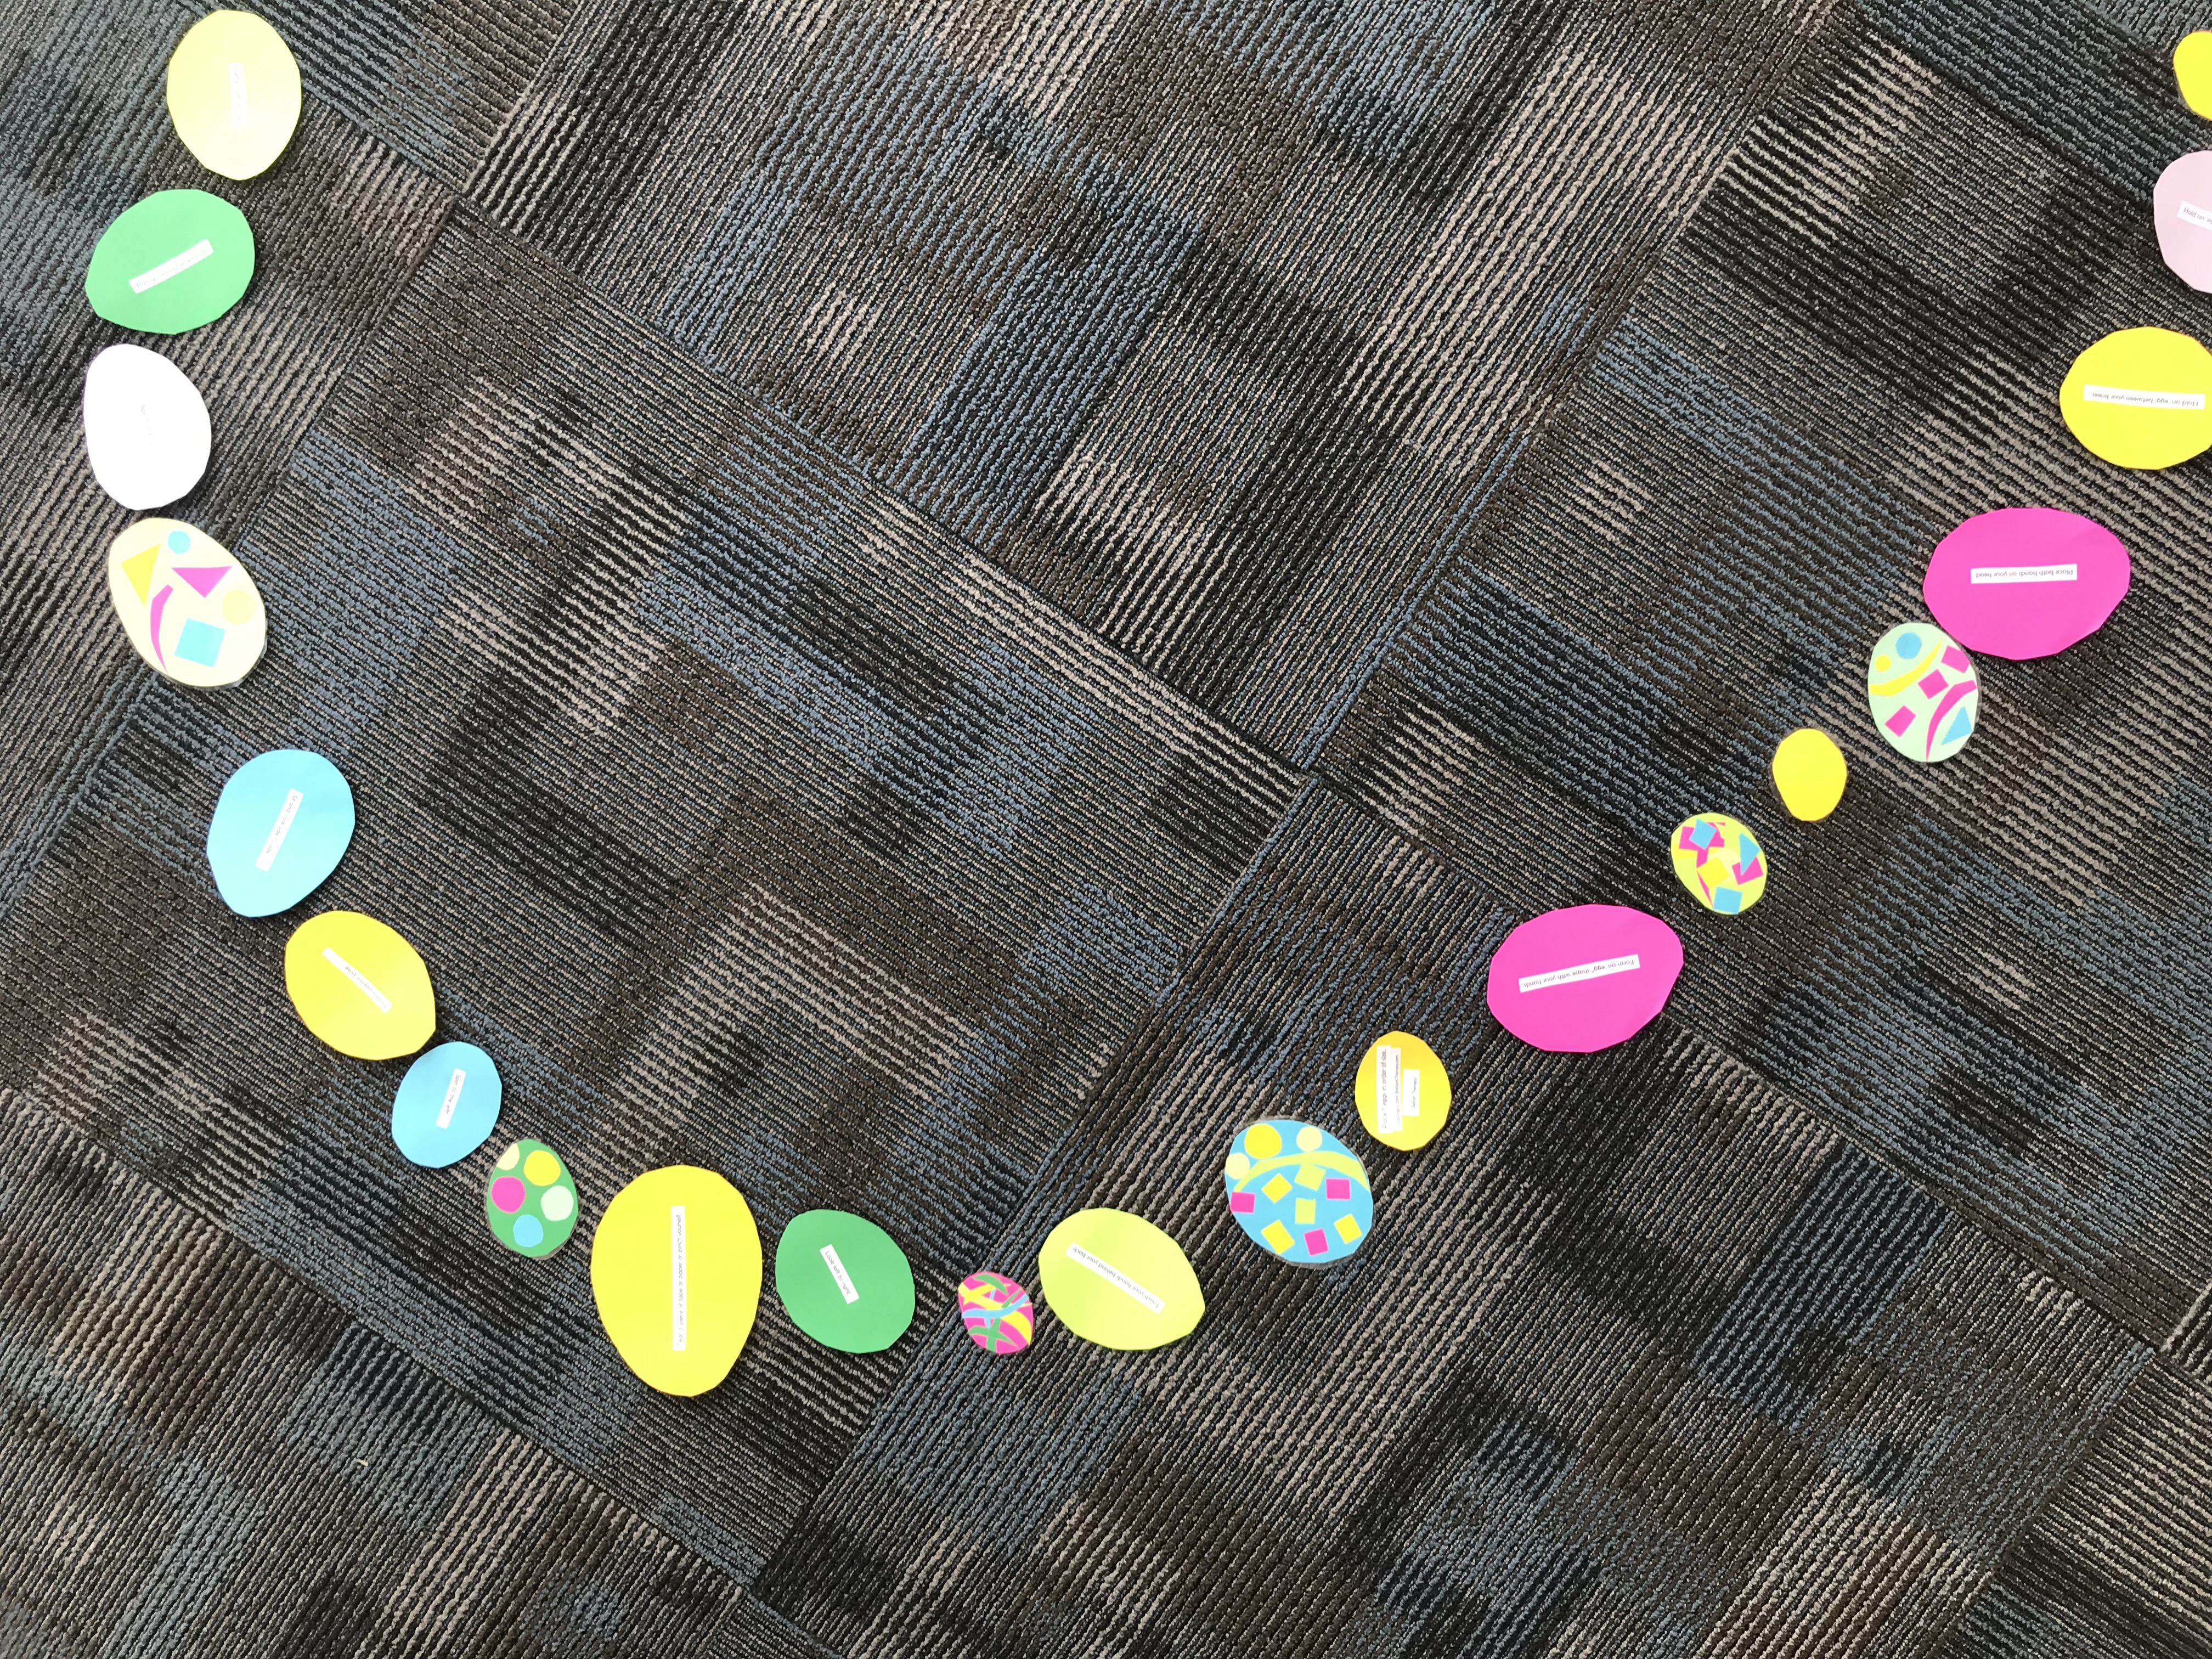 Colorful paper eggs on floor